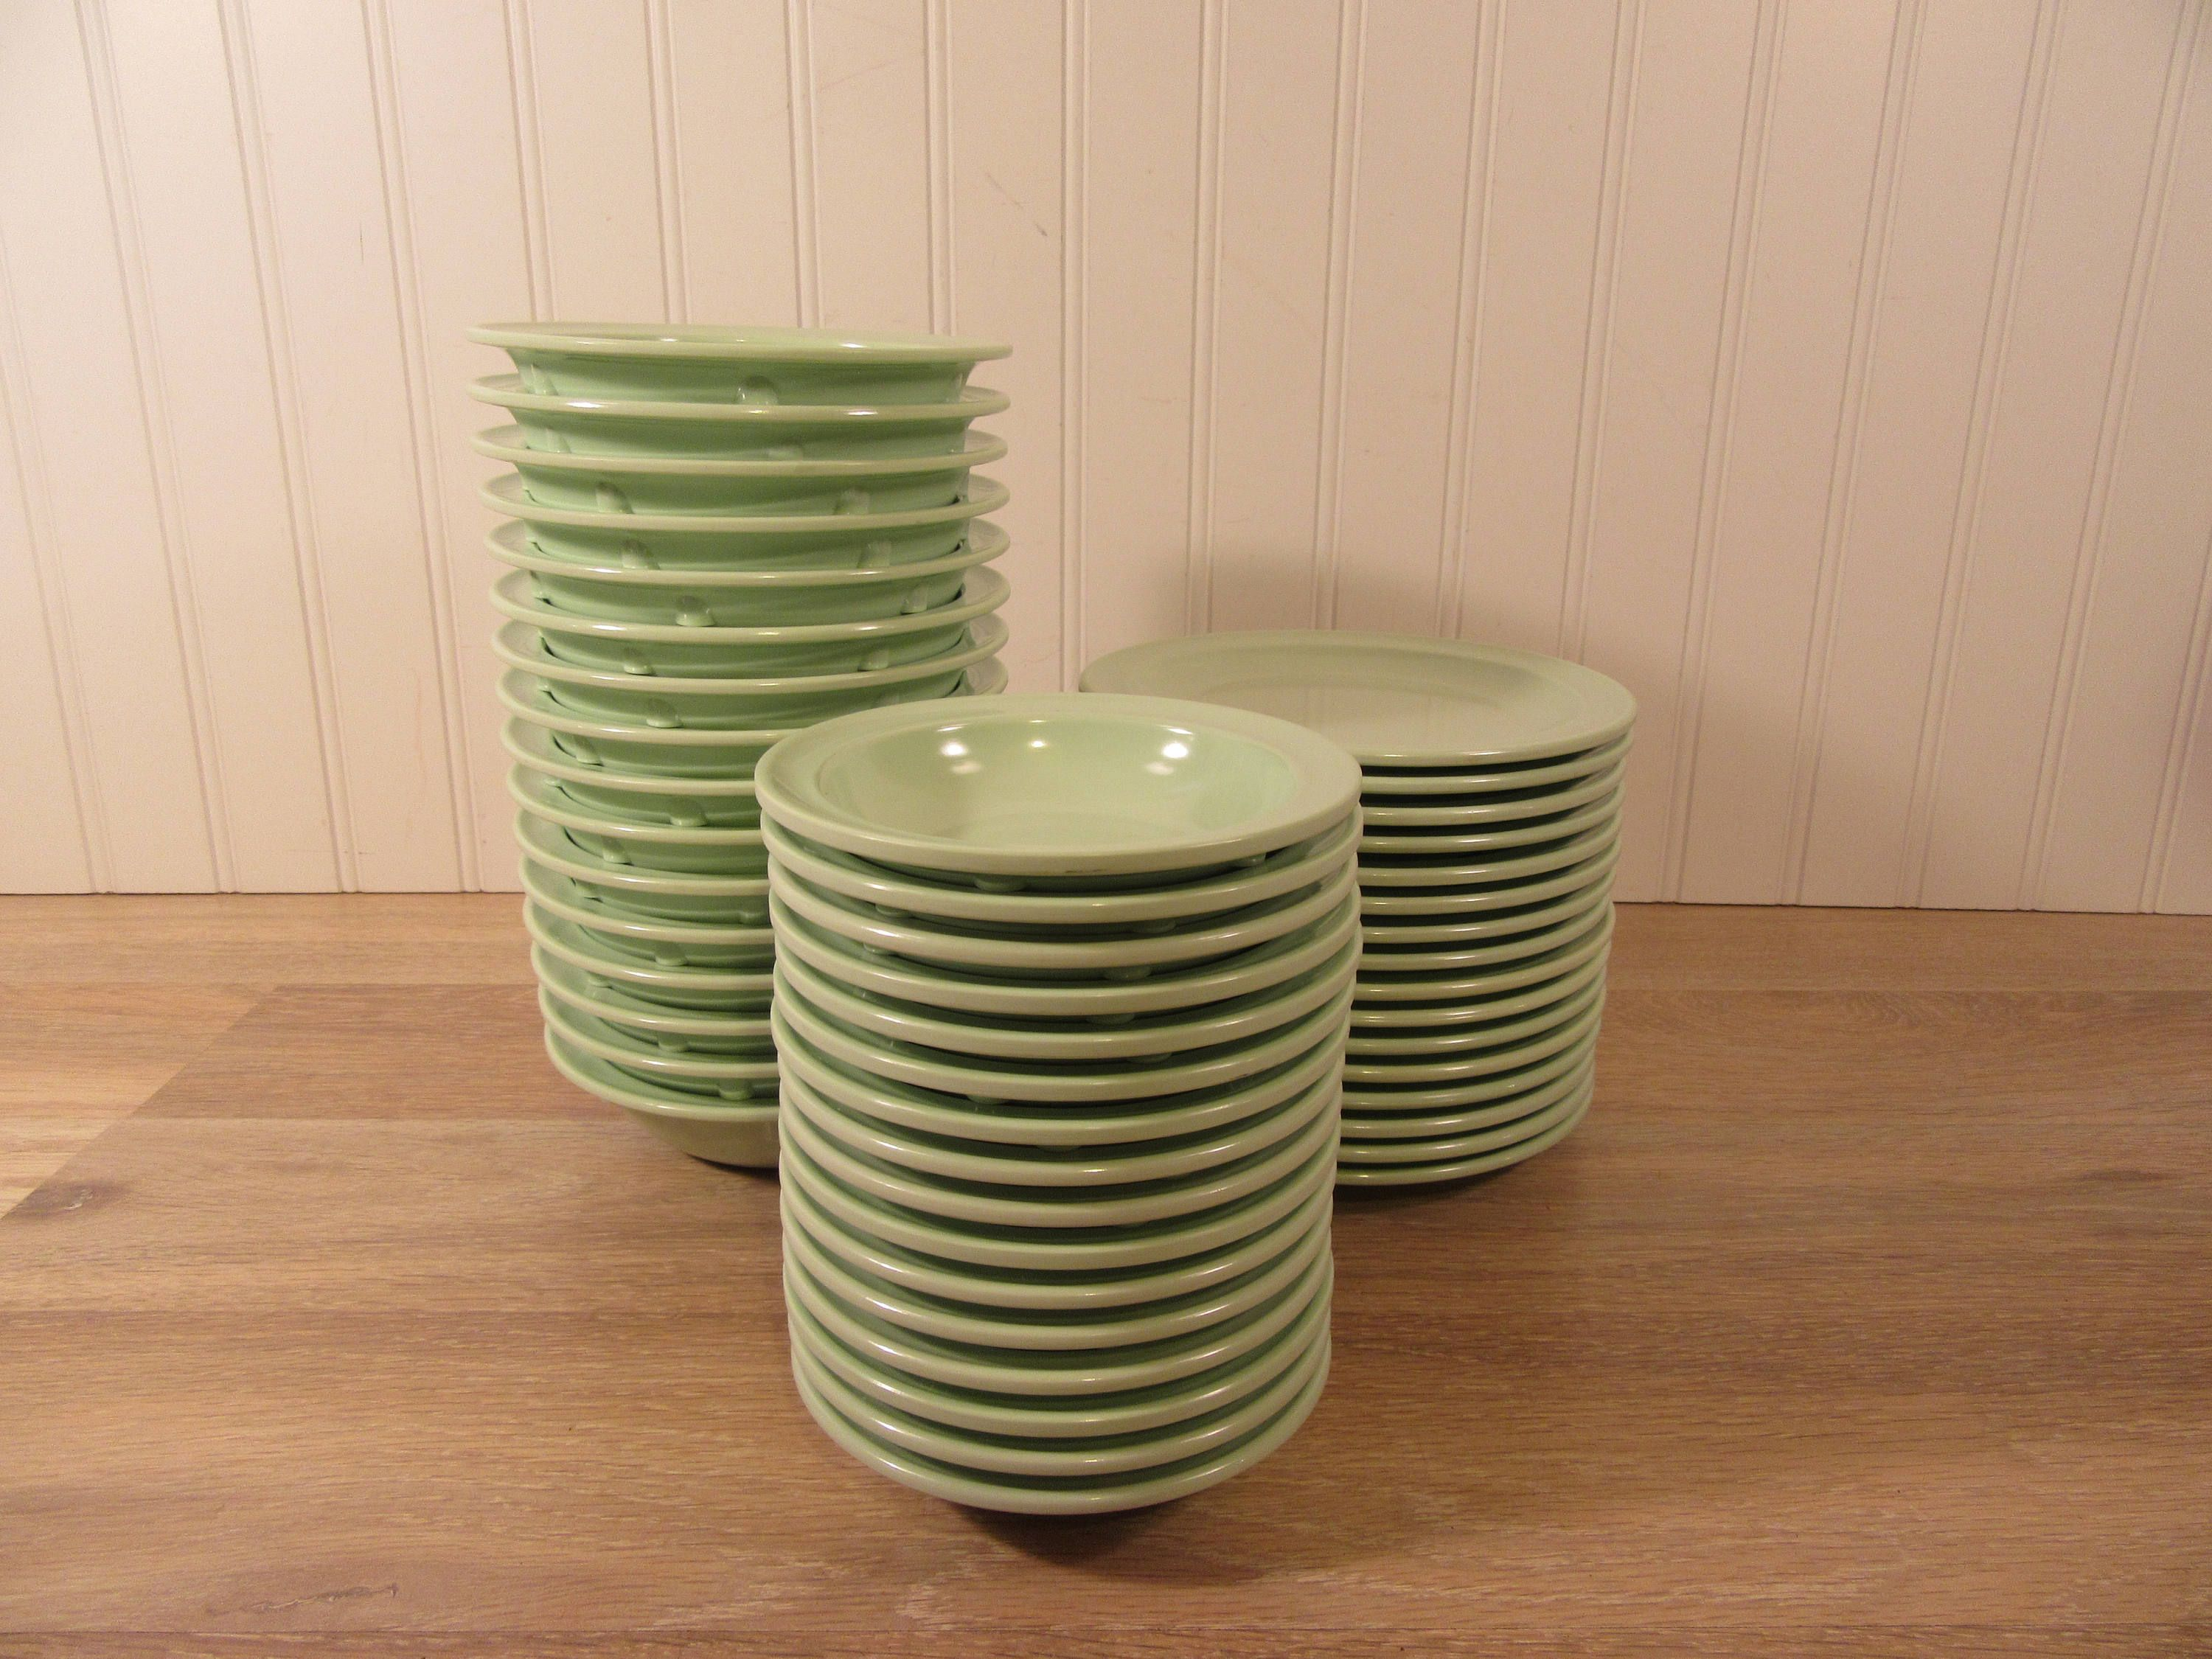 36 pieces of melamine dish ware- Prolon mint green-mid century- bowls, dishes and small plates for one price- nice condition #dishware